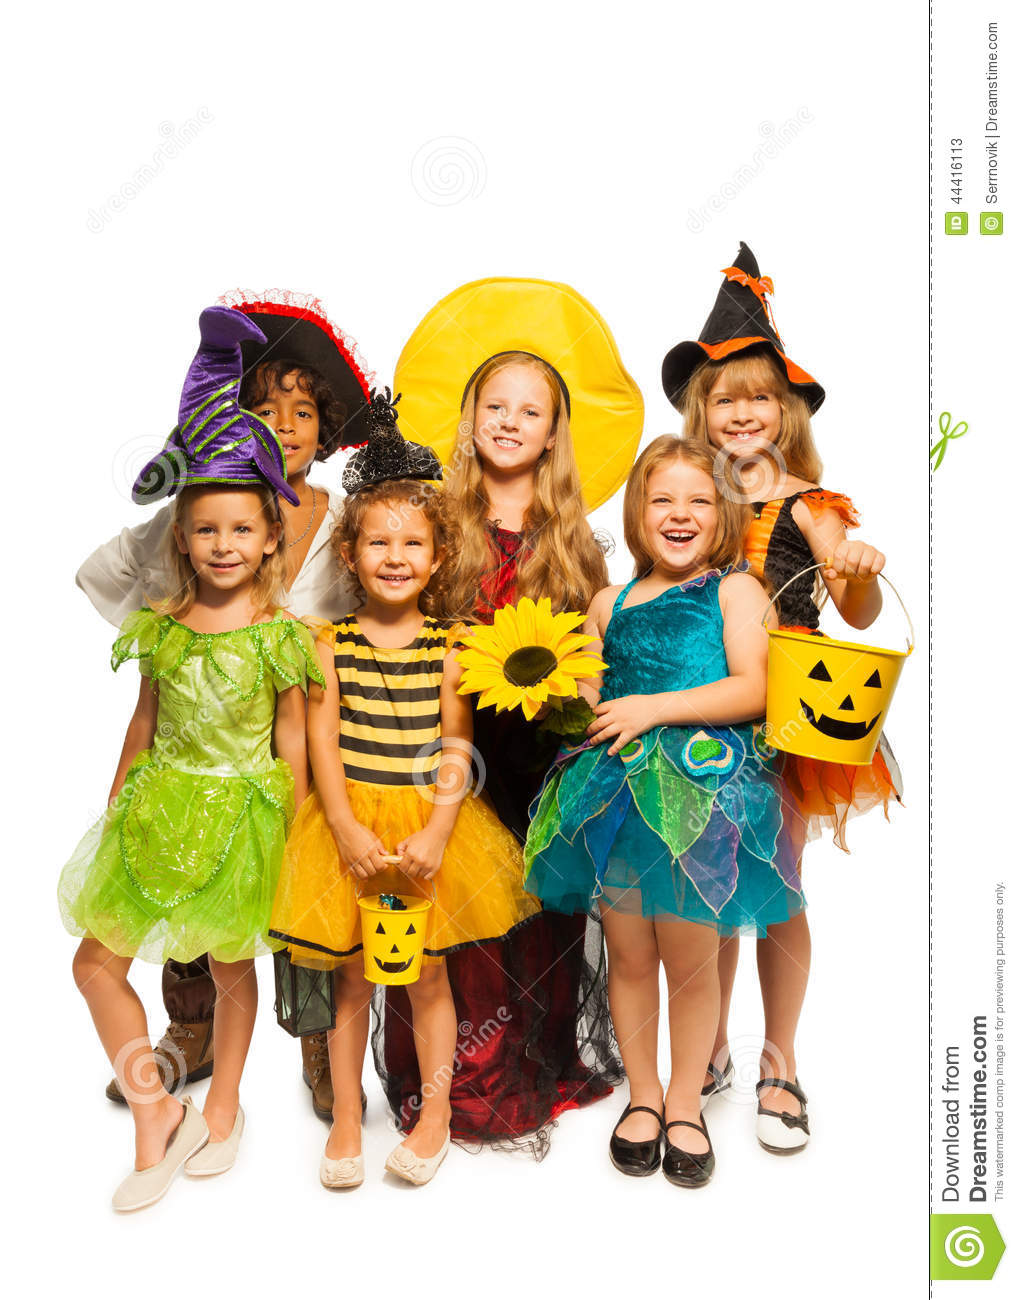 group of kids in halloween costumes stock image - image of portrait